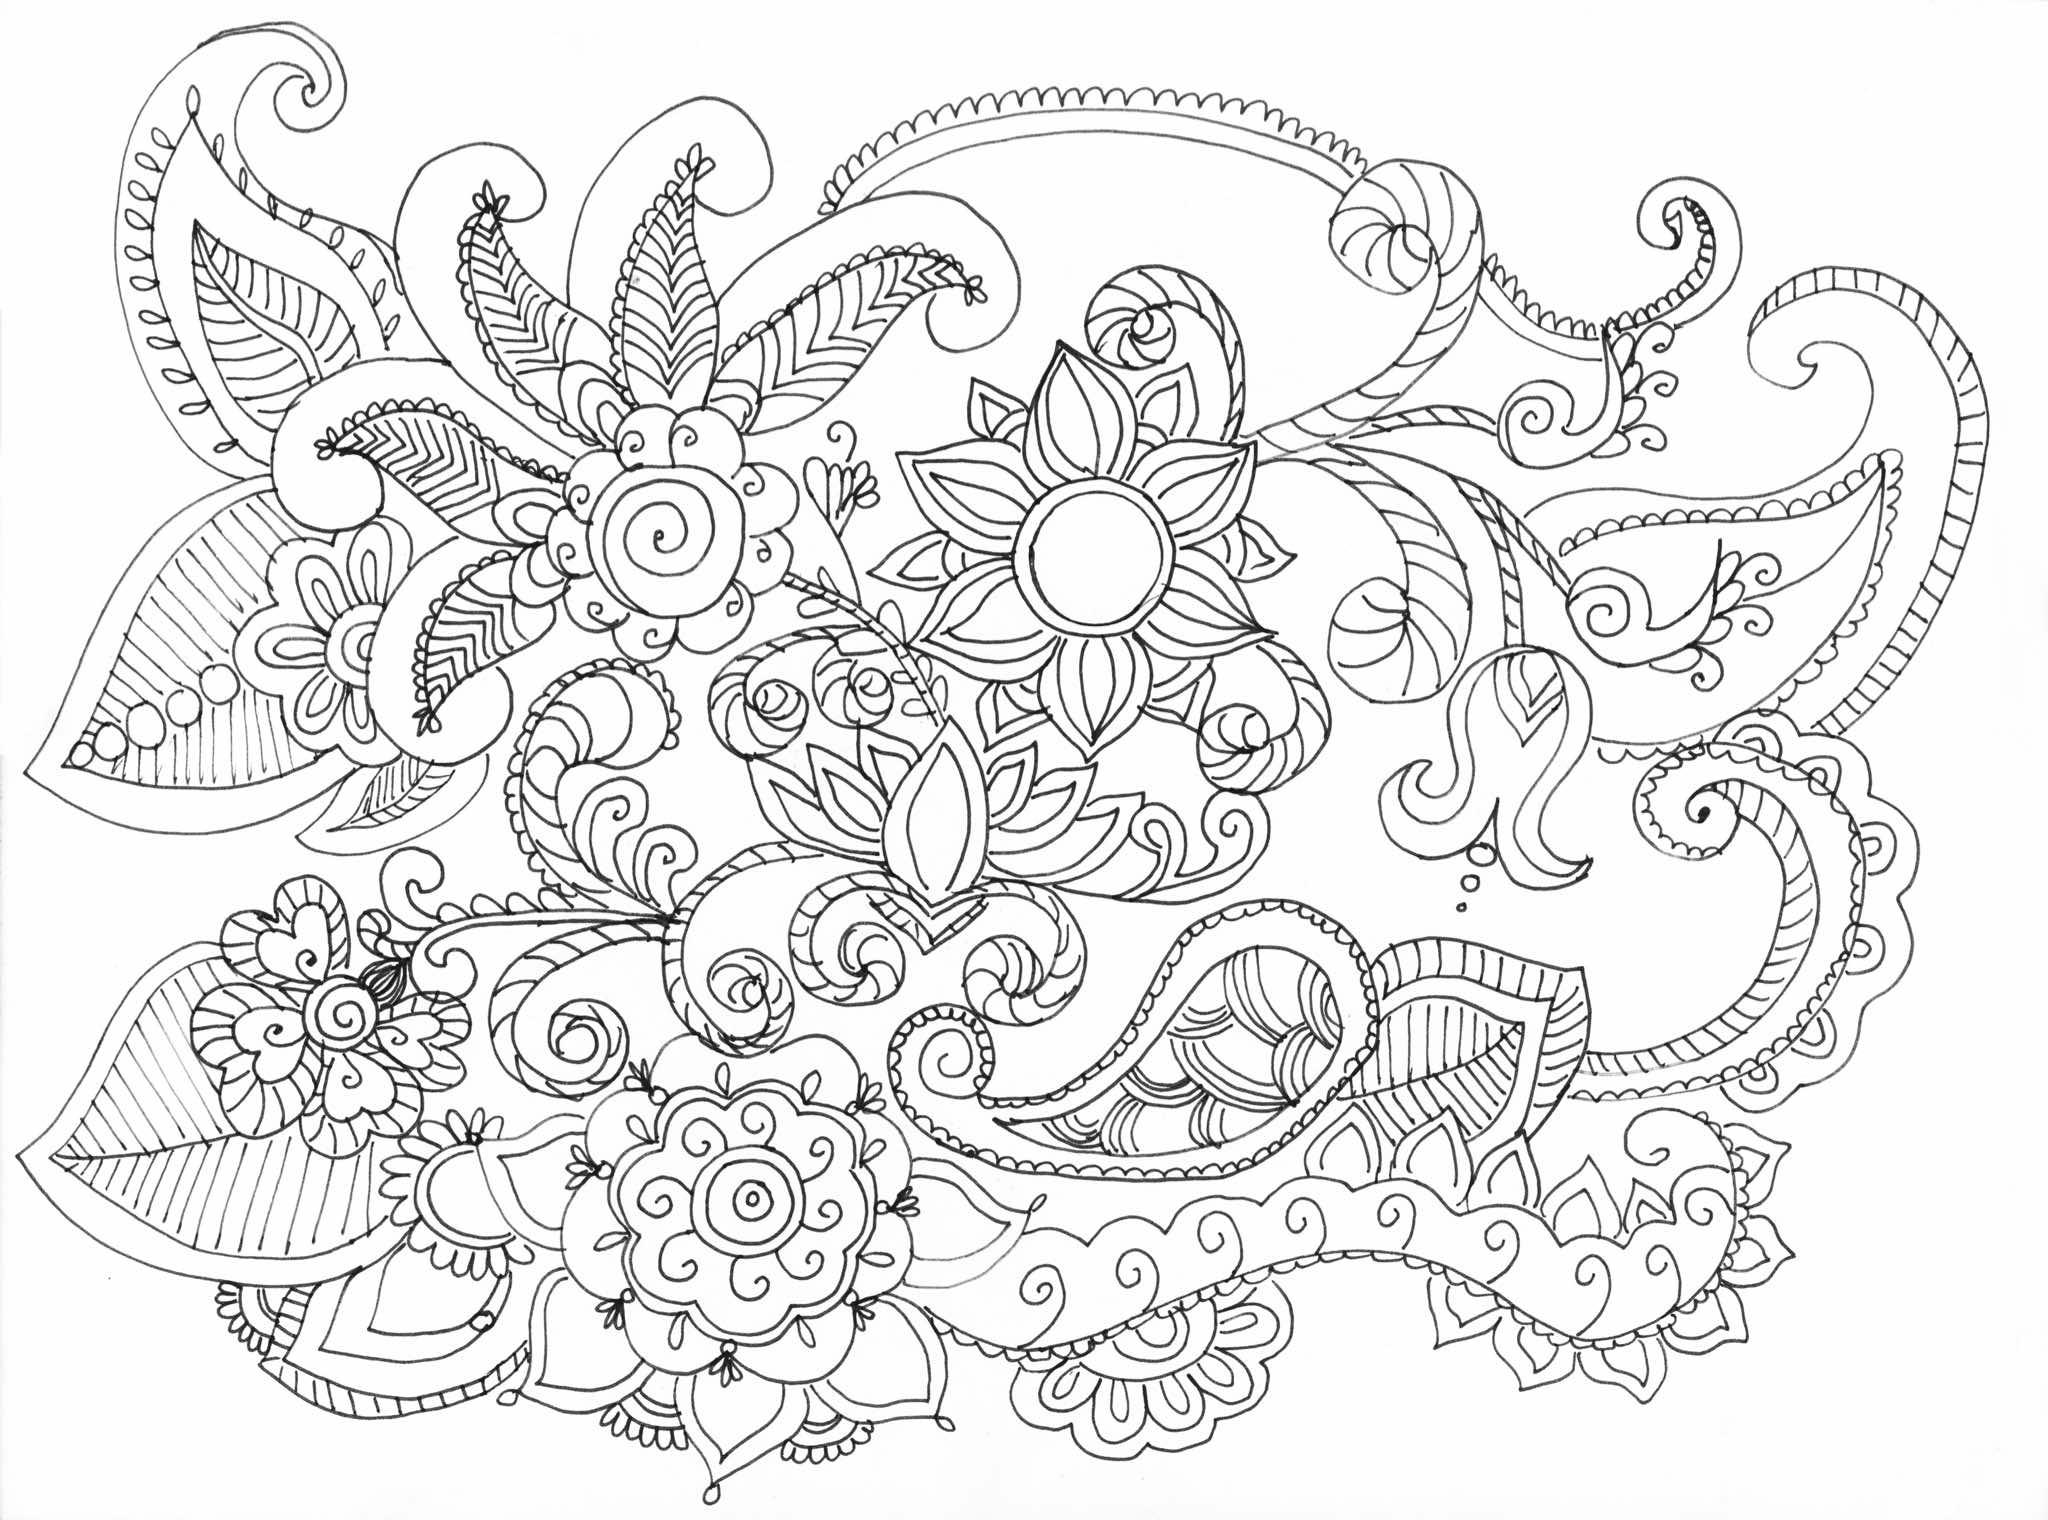 JGHS 2015-2016 Coloring Book Designs